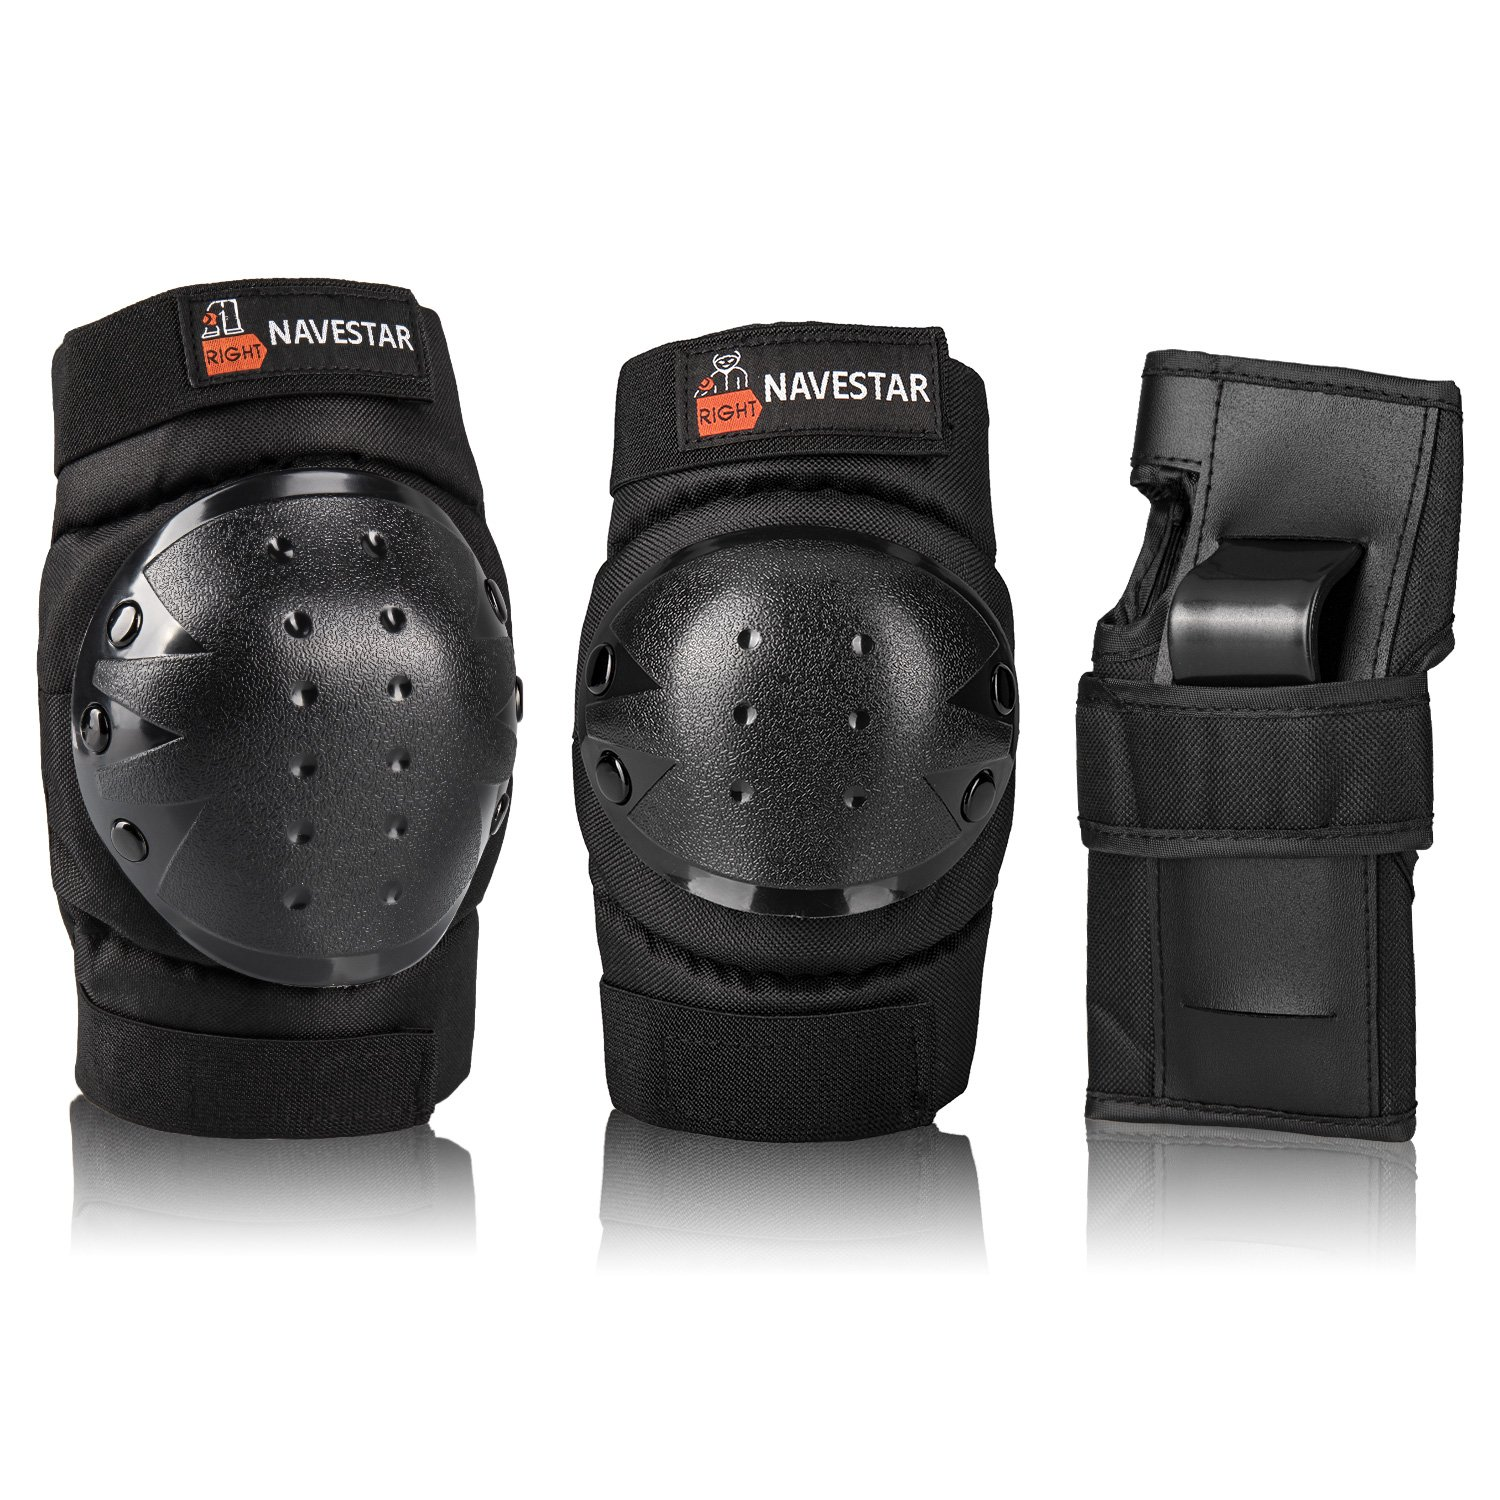 NAVESTAR Knee Pads Elbows Pads Wrist Guards 3 in 1 Protective Gear Set for Skateboarding, Inline Roller Skating